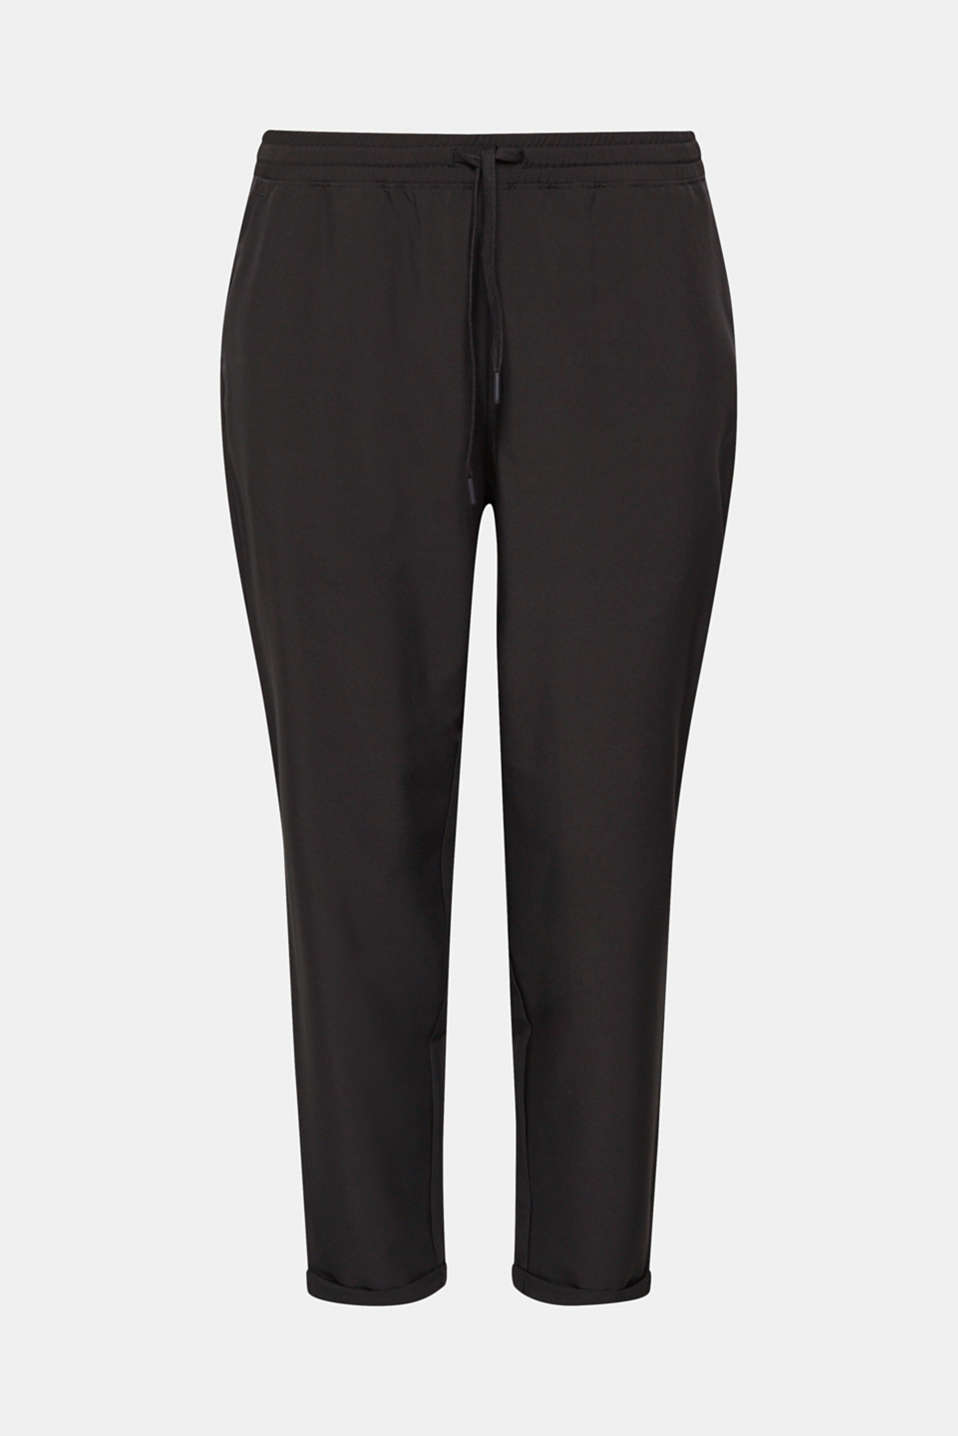 Lightweight woven trousers with turn-up hems, E-DRY, BLACK, detail image number 6